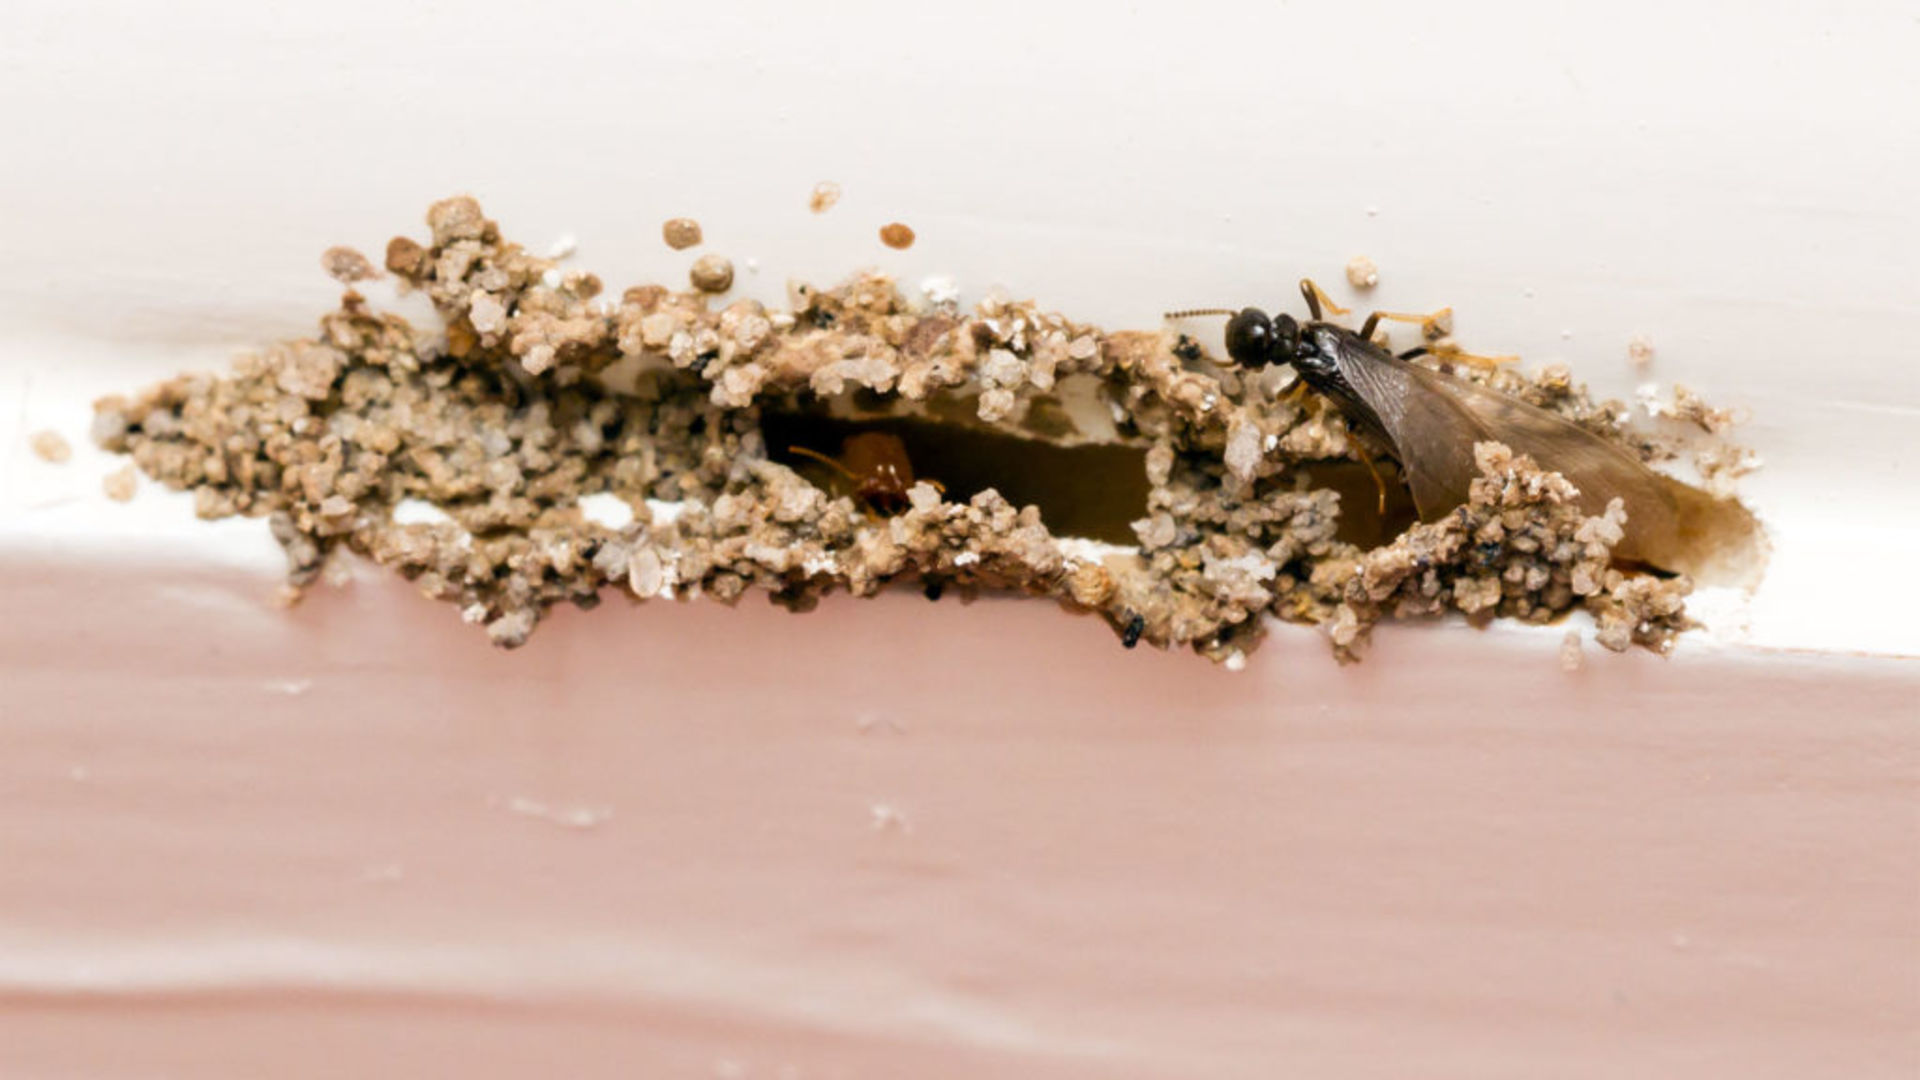 How to Prevent a Termite Infestation: Ways to Keep These Pests From Devouring Your Home